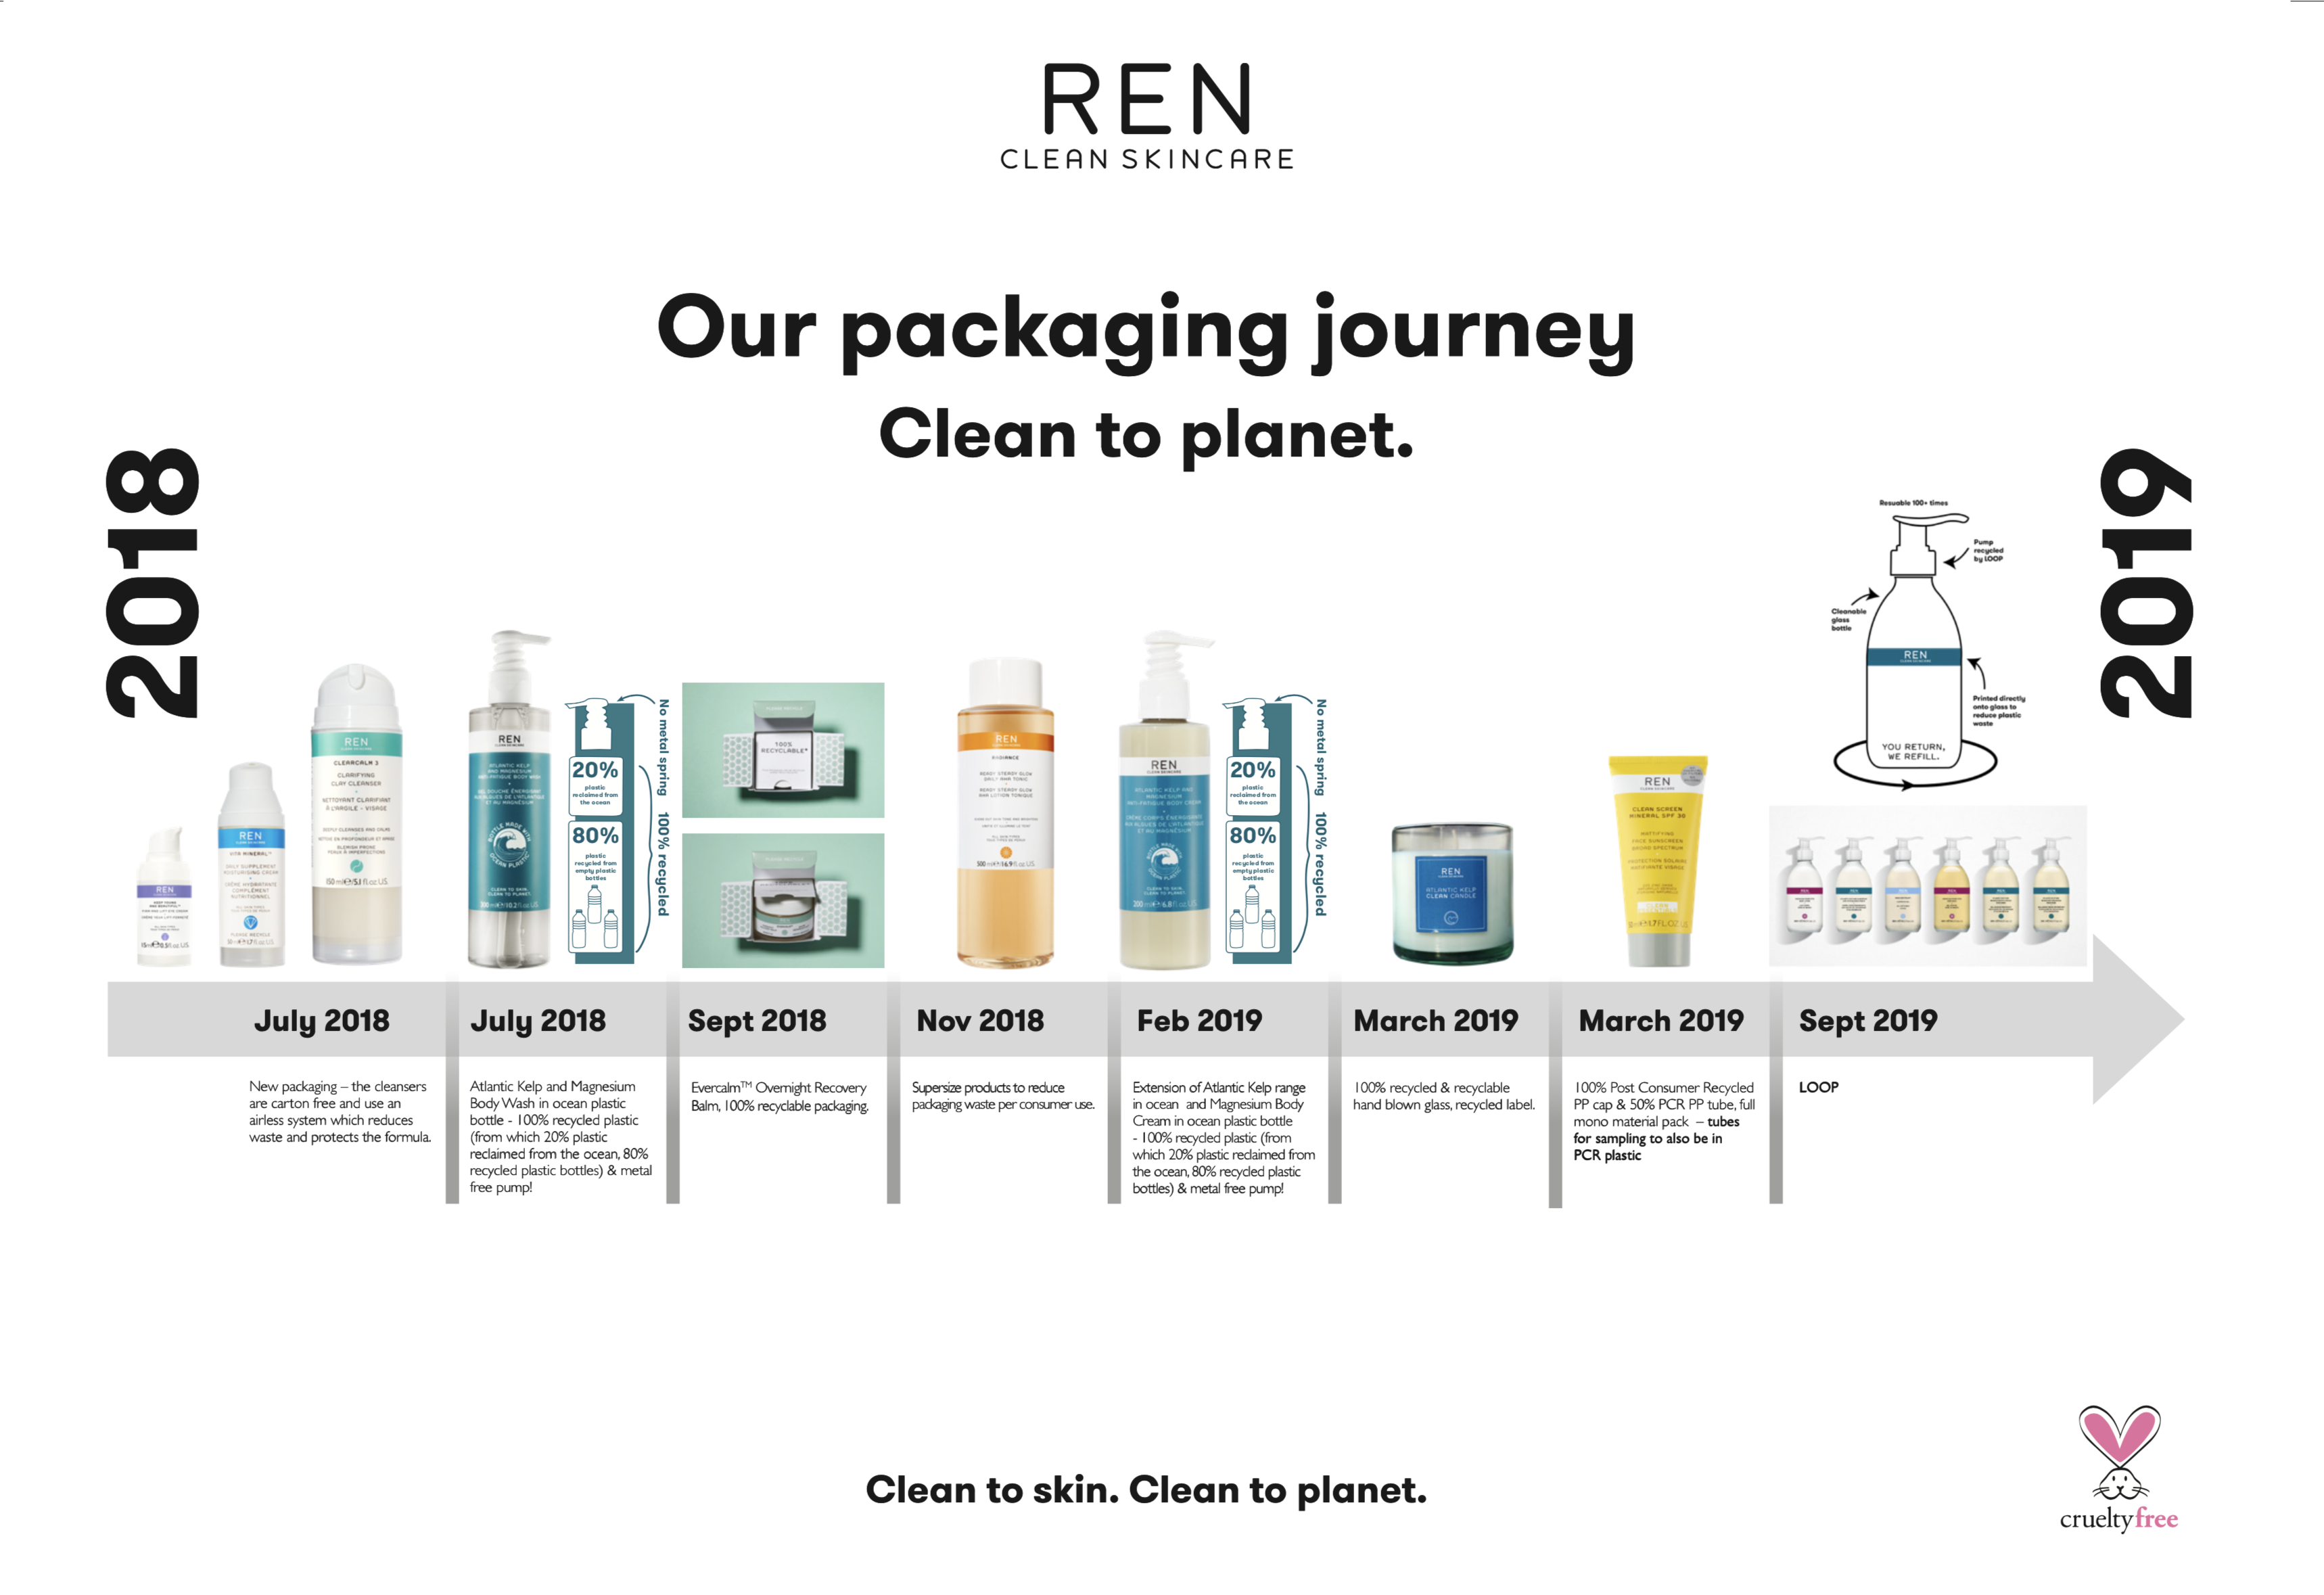 Timeline of REN packaging